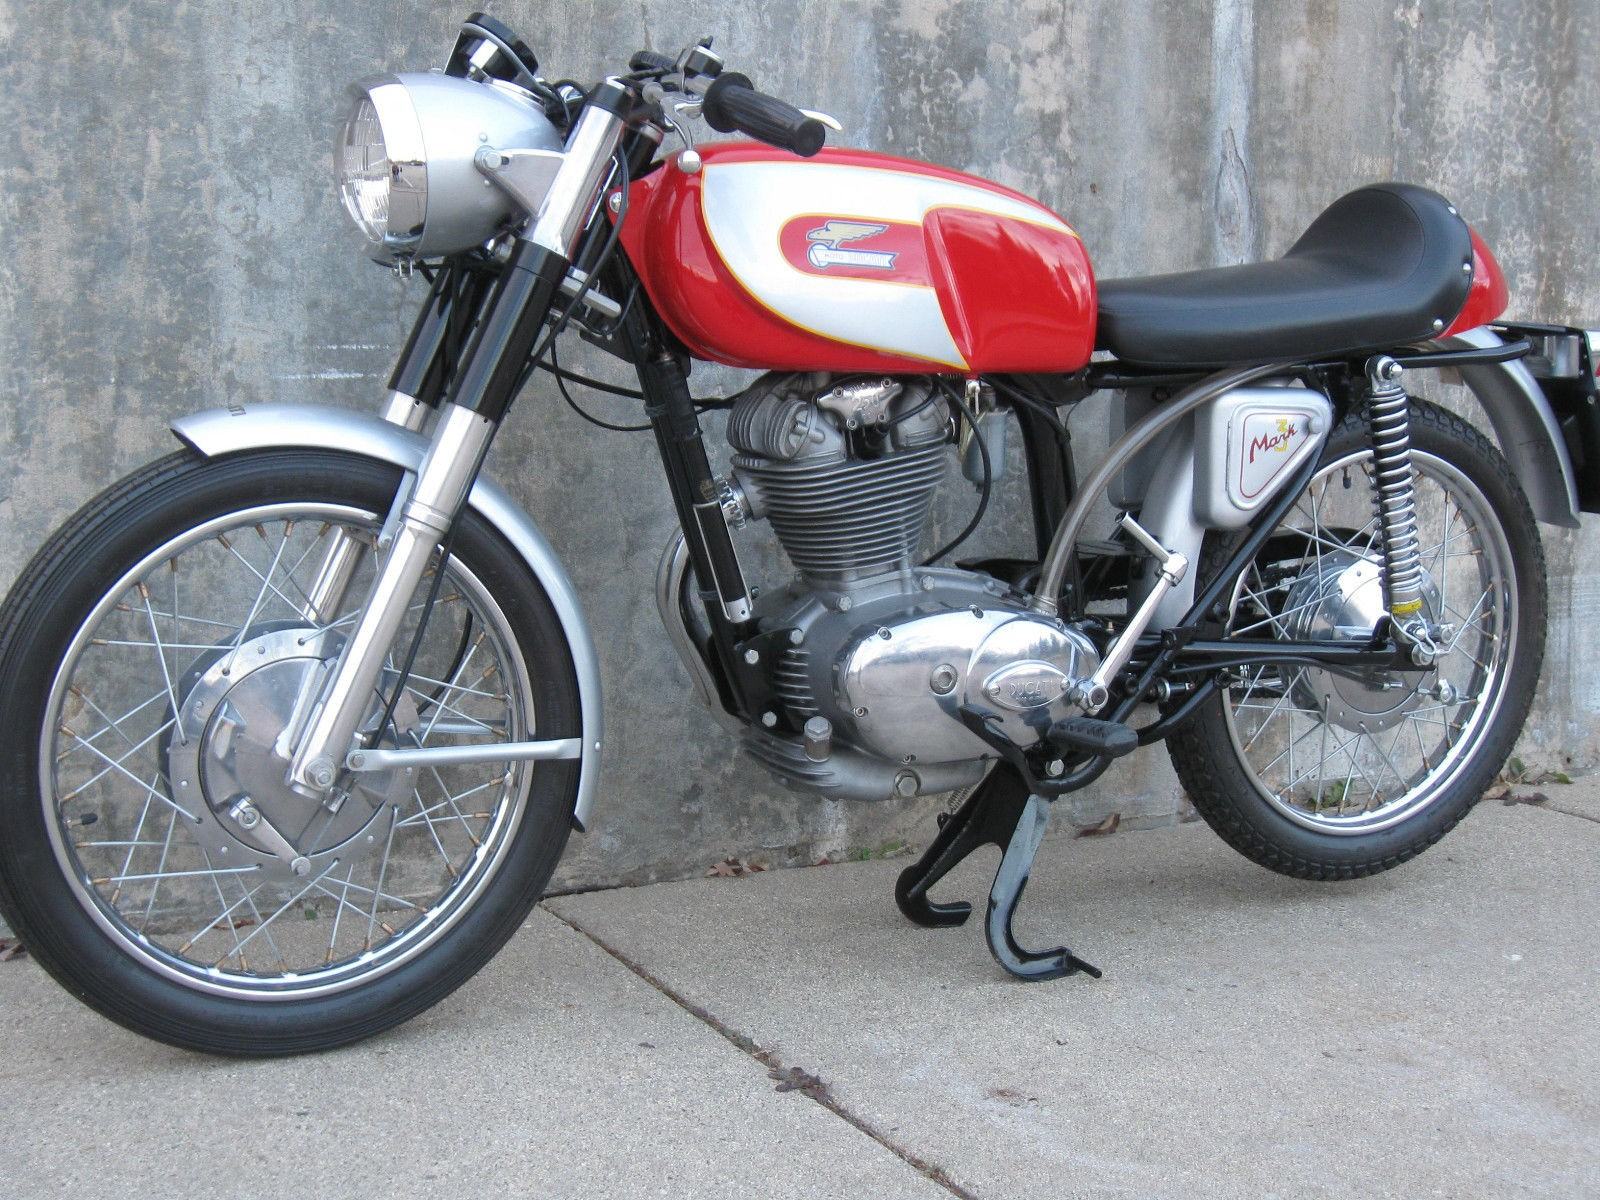 Ducati 250 Mark 3 1970 images #9706